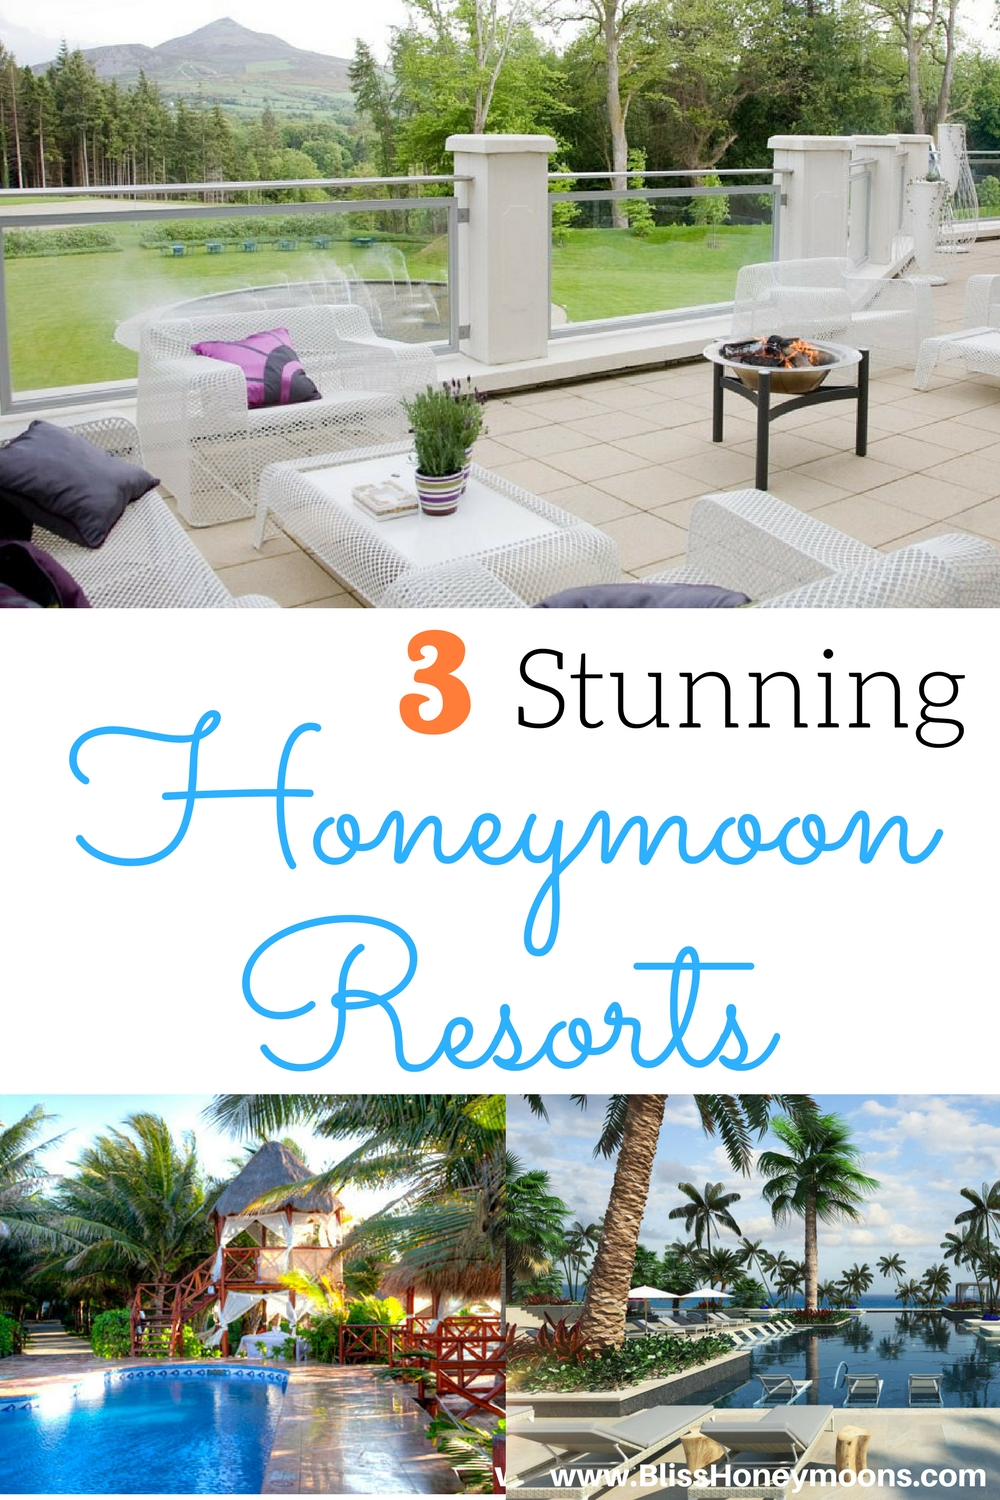 3 stunning honeymoon resorts, El Dorado Royale honeymoon, best honeymoon resorts, top honeymoon resorts, Powerscourt Hotel honeymoon, Unico honeymoon